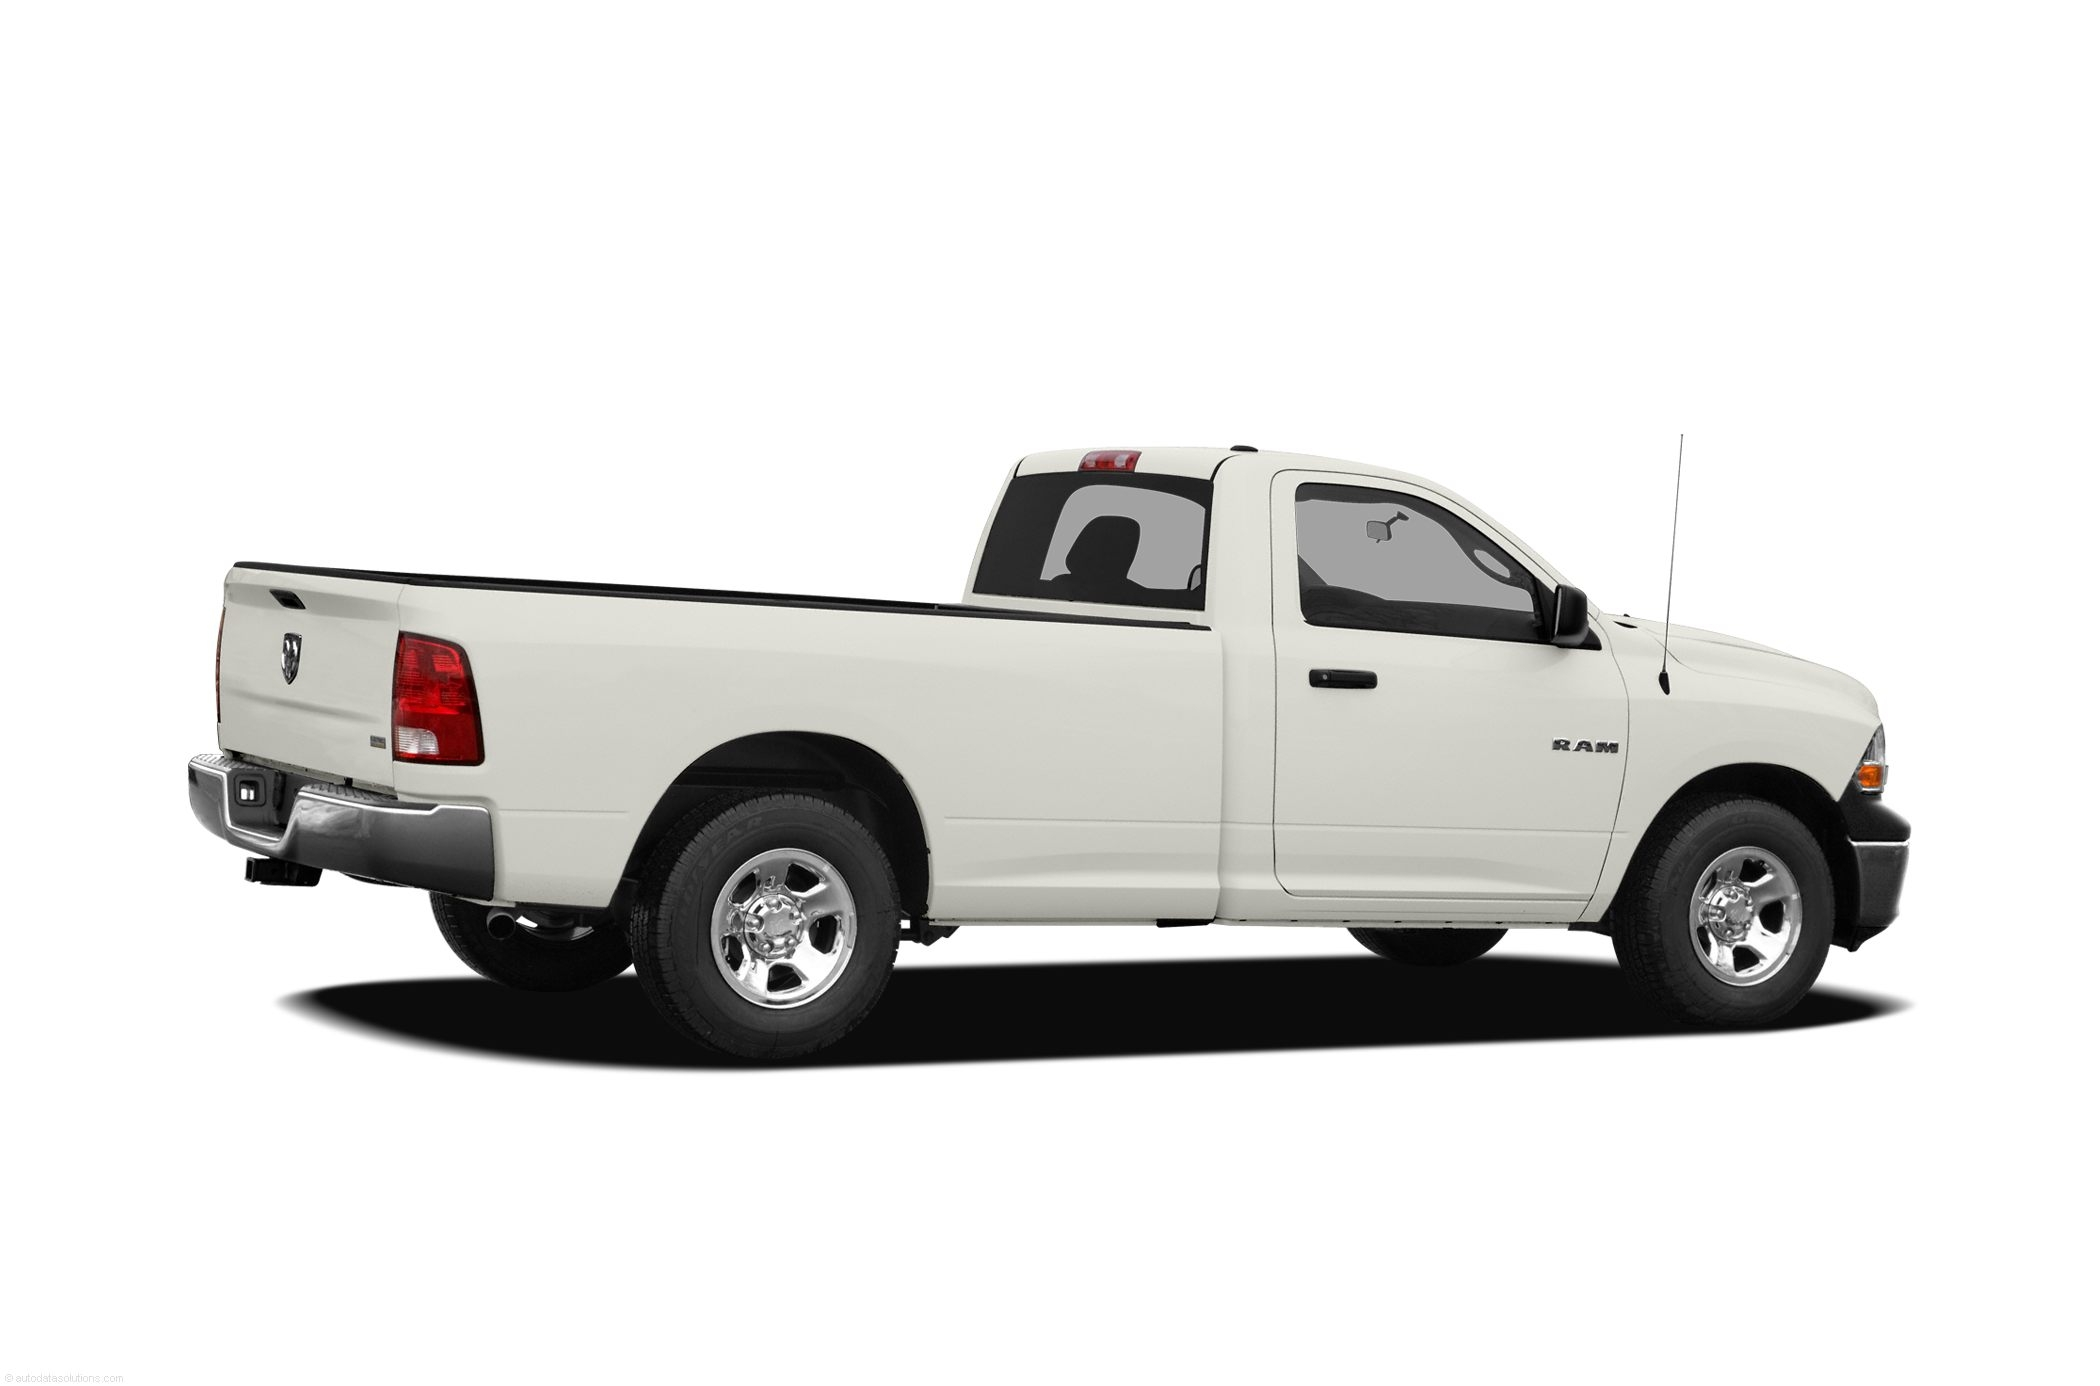 2011 dodge ram 1500 reviews specs and prices search results truck invoice price